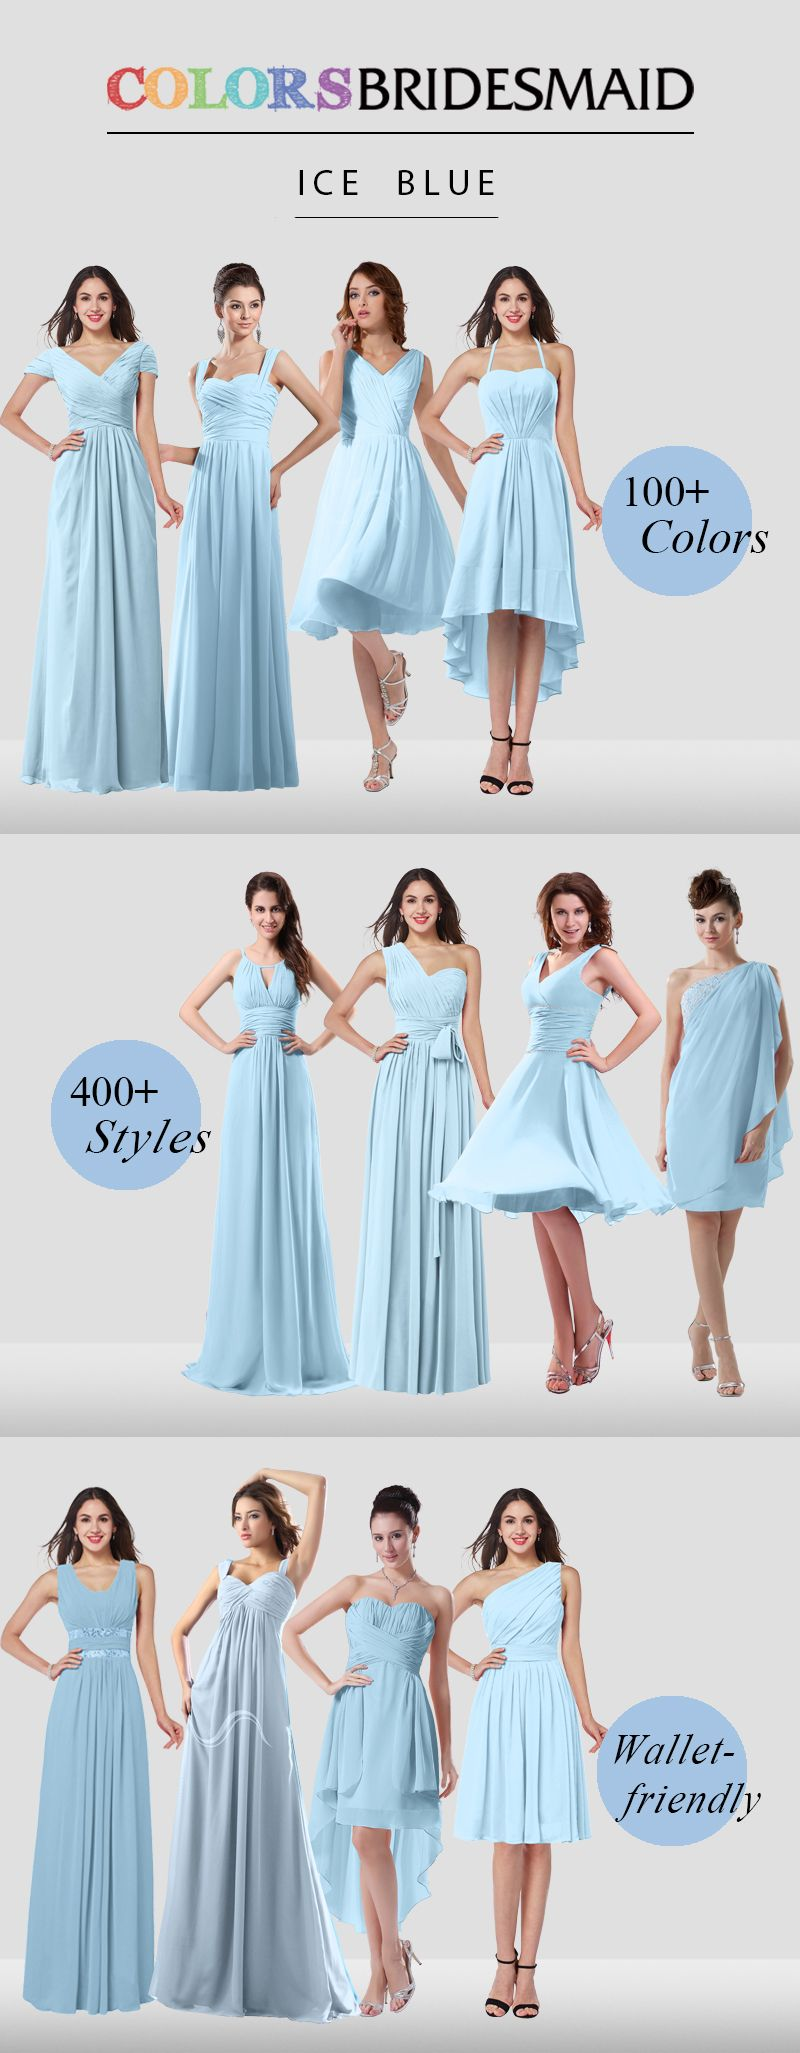 Ice blue bridesmaid dresses are all made to order to flatter your ice blue bridesmaid dresses are all made to order to flatter your figure affordable prices ombrellifo Image collections